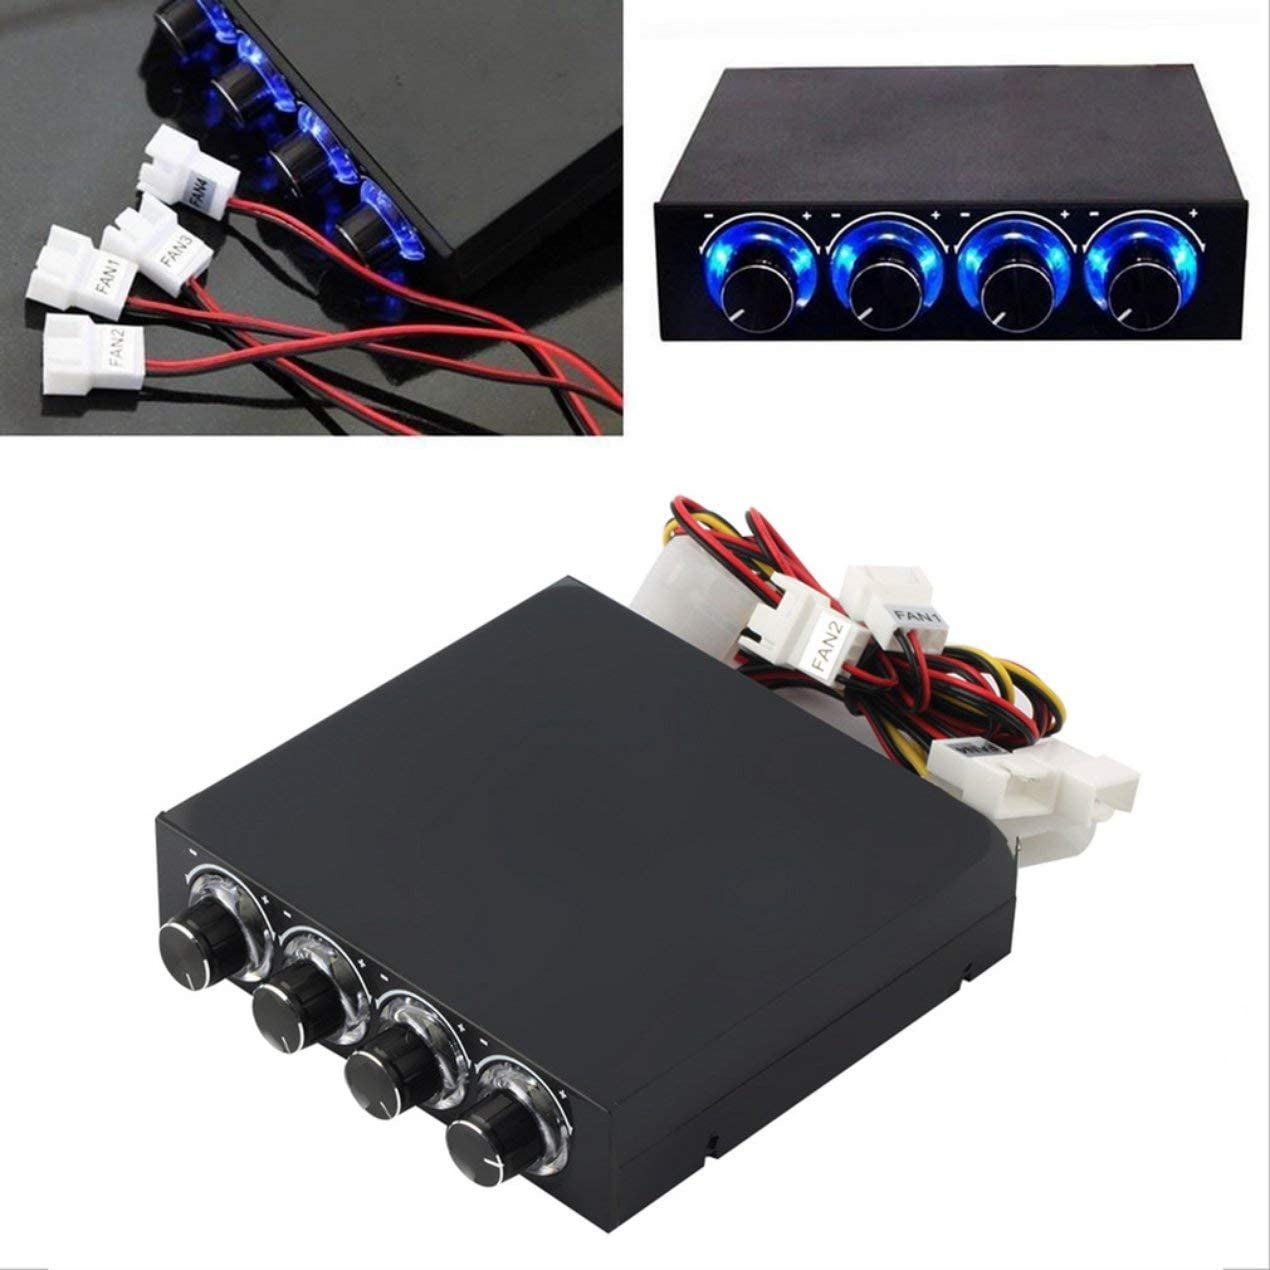 Jullynice 3.5inch PC Case PC HDD CPU 4 Channel Fan Speed Controller with Blue LED Speed Fan Control Cooling Front Panel